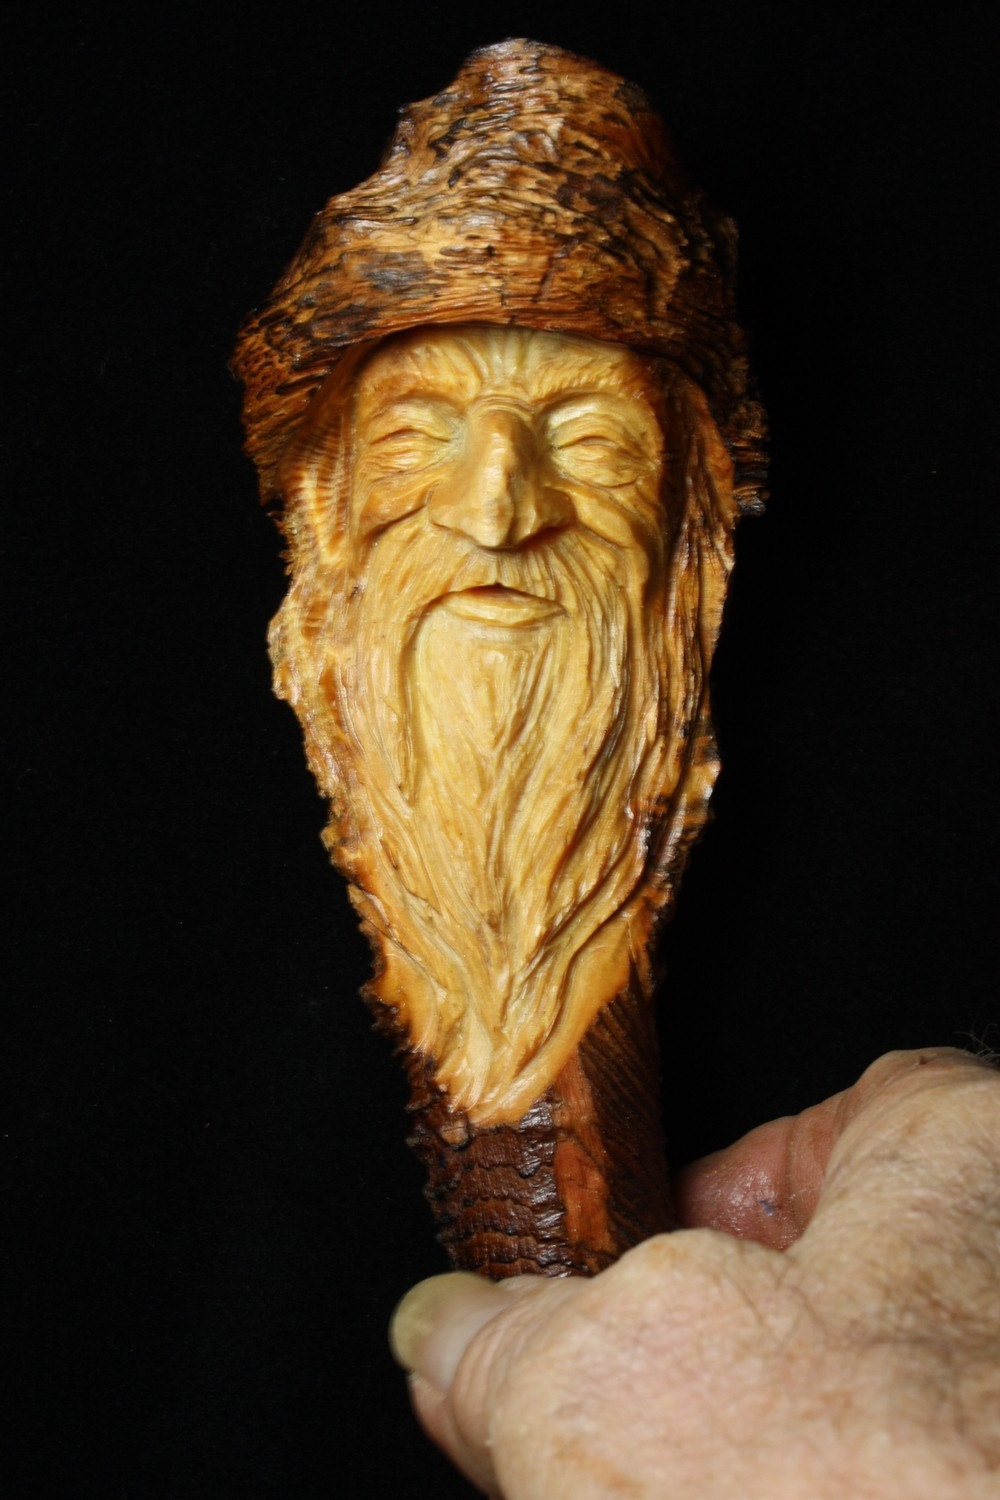 Wood spirit jewels the elf wizard carved in a pine knot